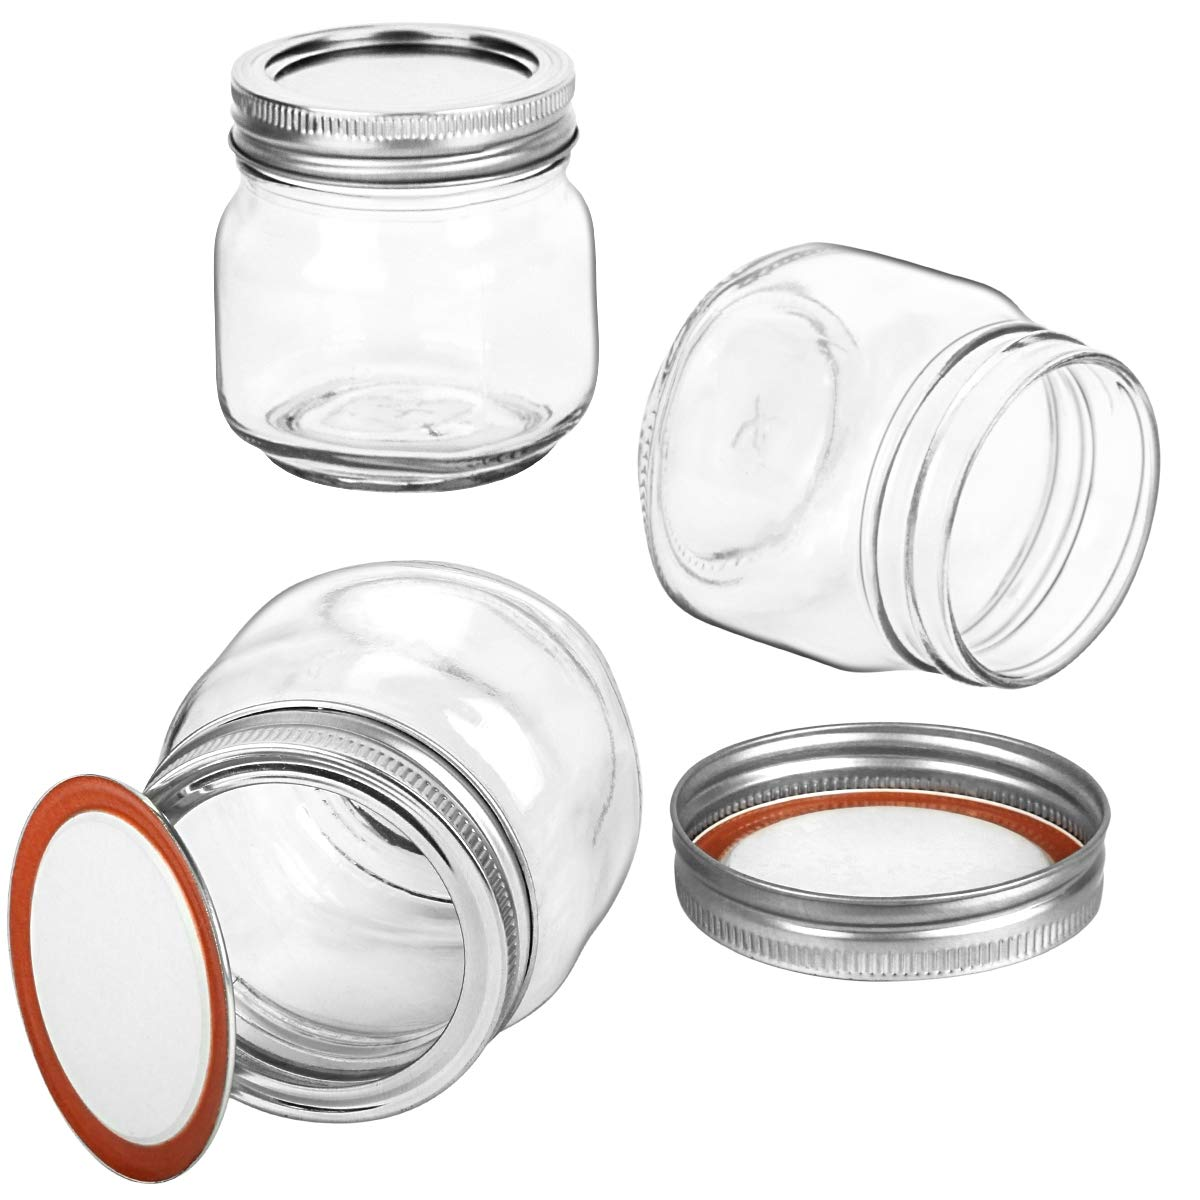 KAMOTA Mason Jars 8OZ With Regular Silver Lids and Bands, Ideal for Jam, Honey, Wedding Favors, Shower Favors, Baby Foods, DIY Magnetic Spice Jars, 24 PACK, 30 Whiteboard Labels Included by KAMOTA (Image #3)